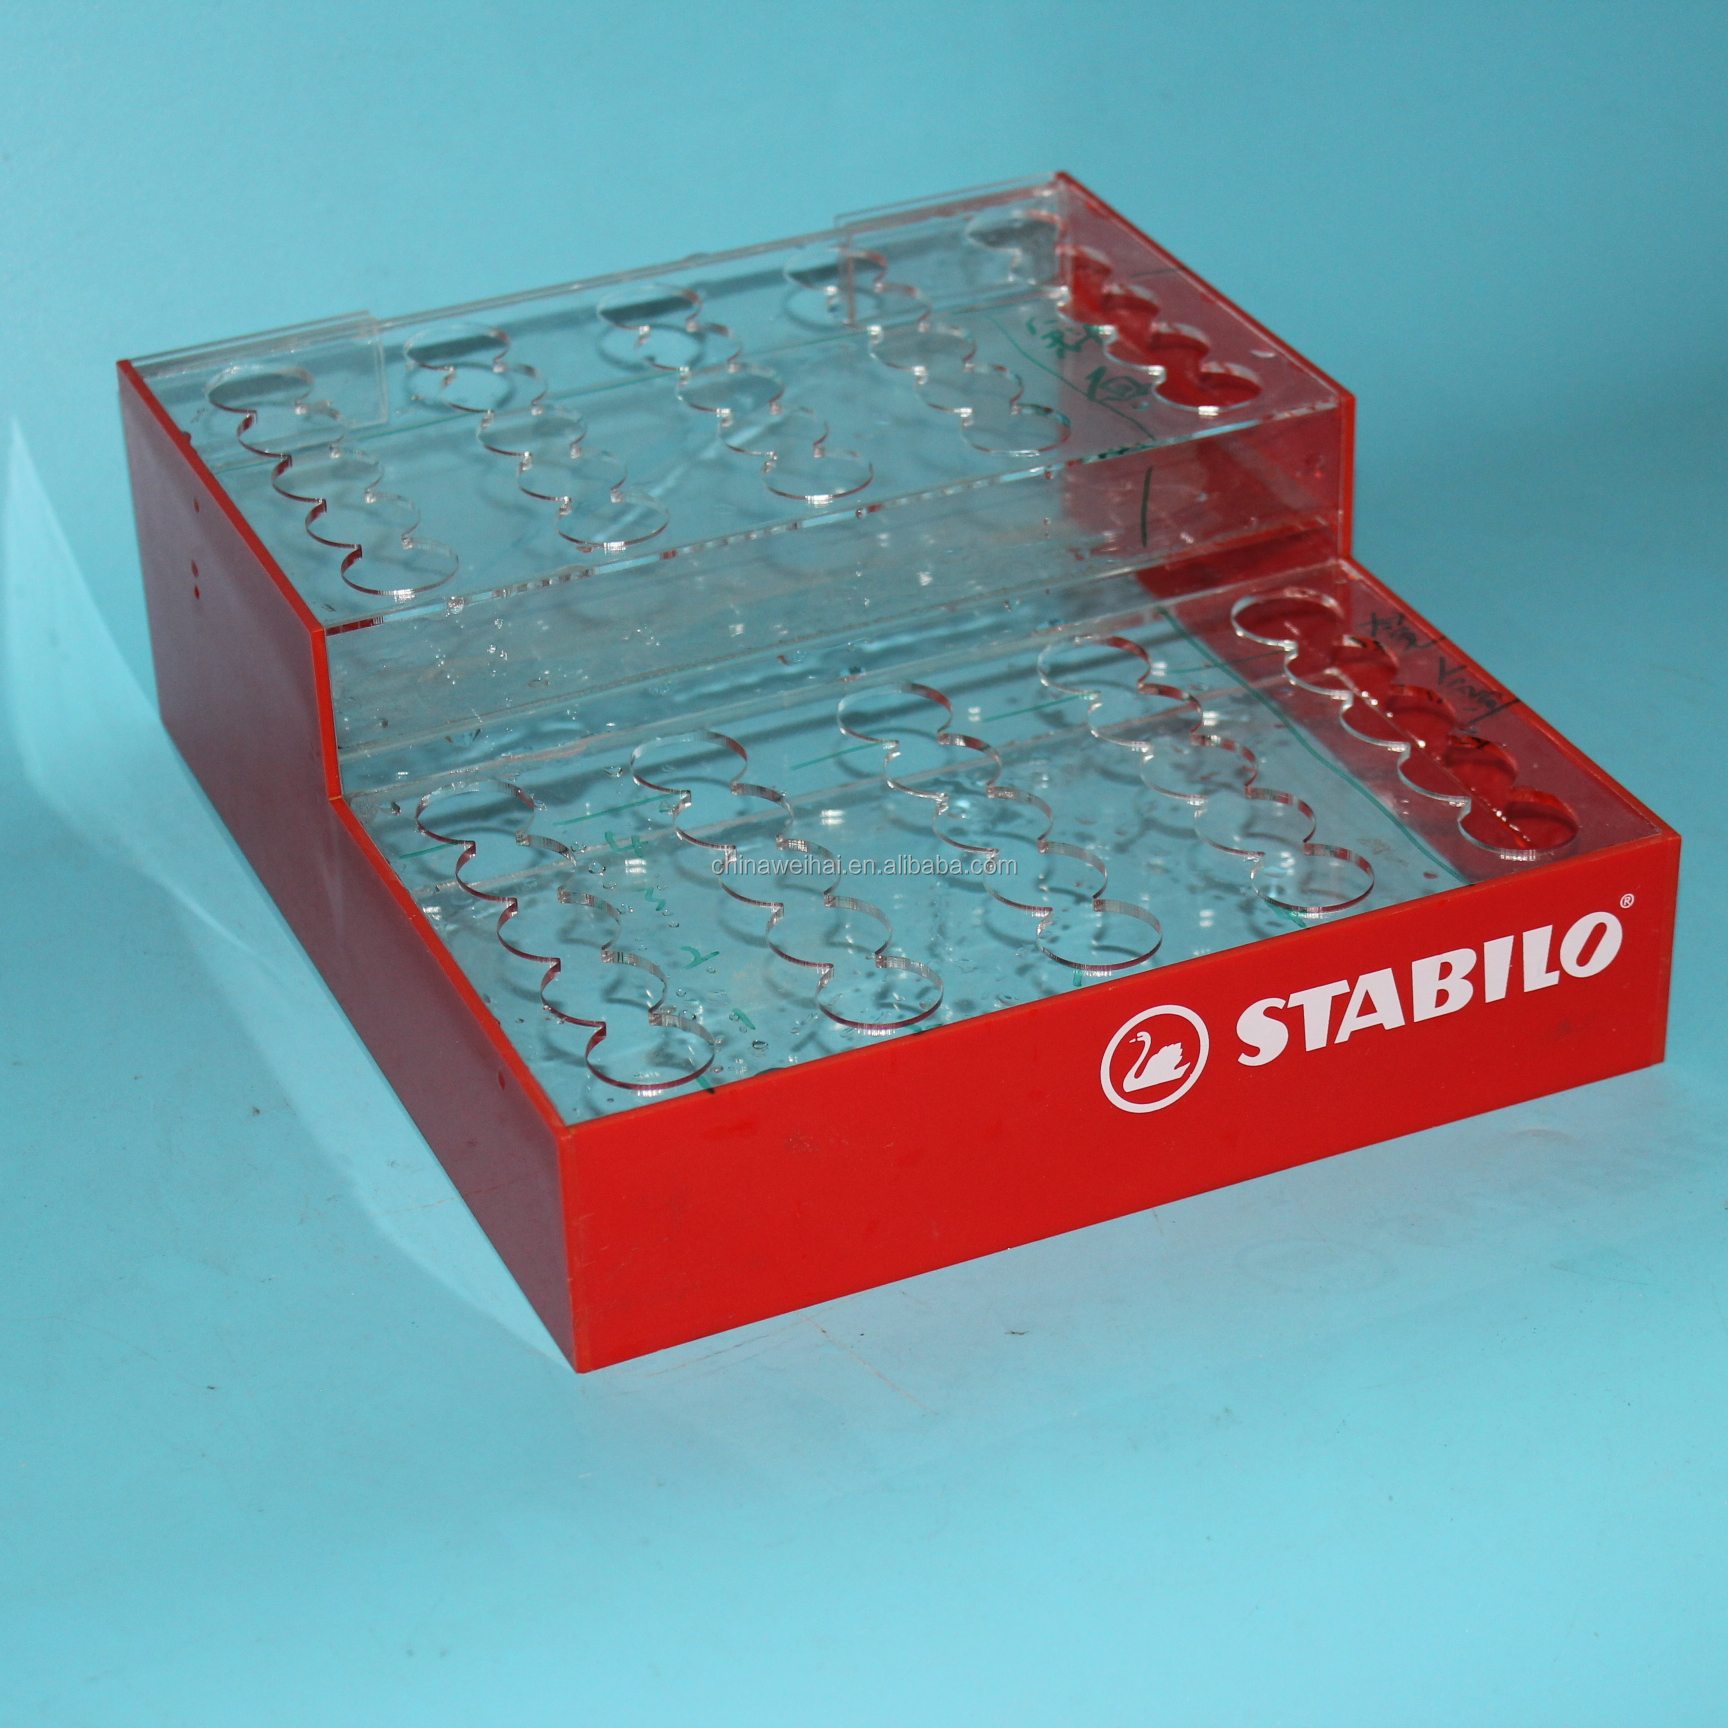 Acrylic Clear Cube Pen Stand Stationery